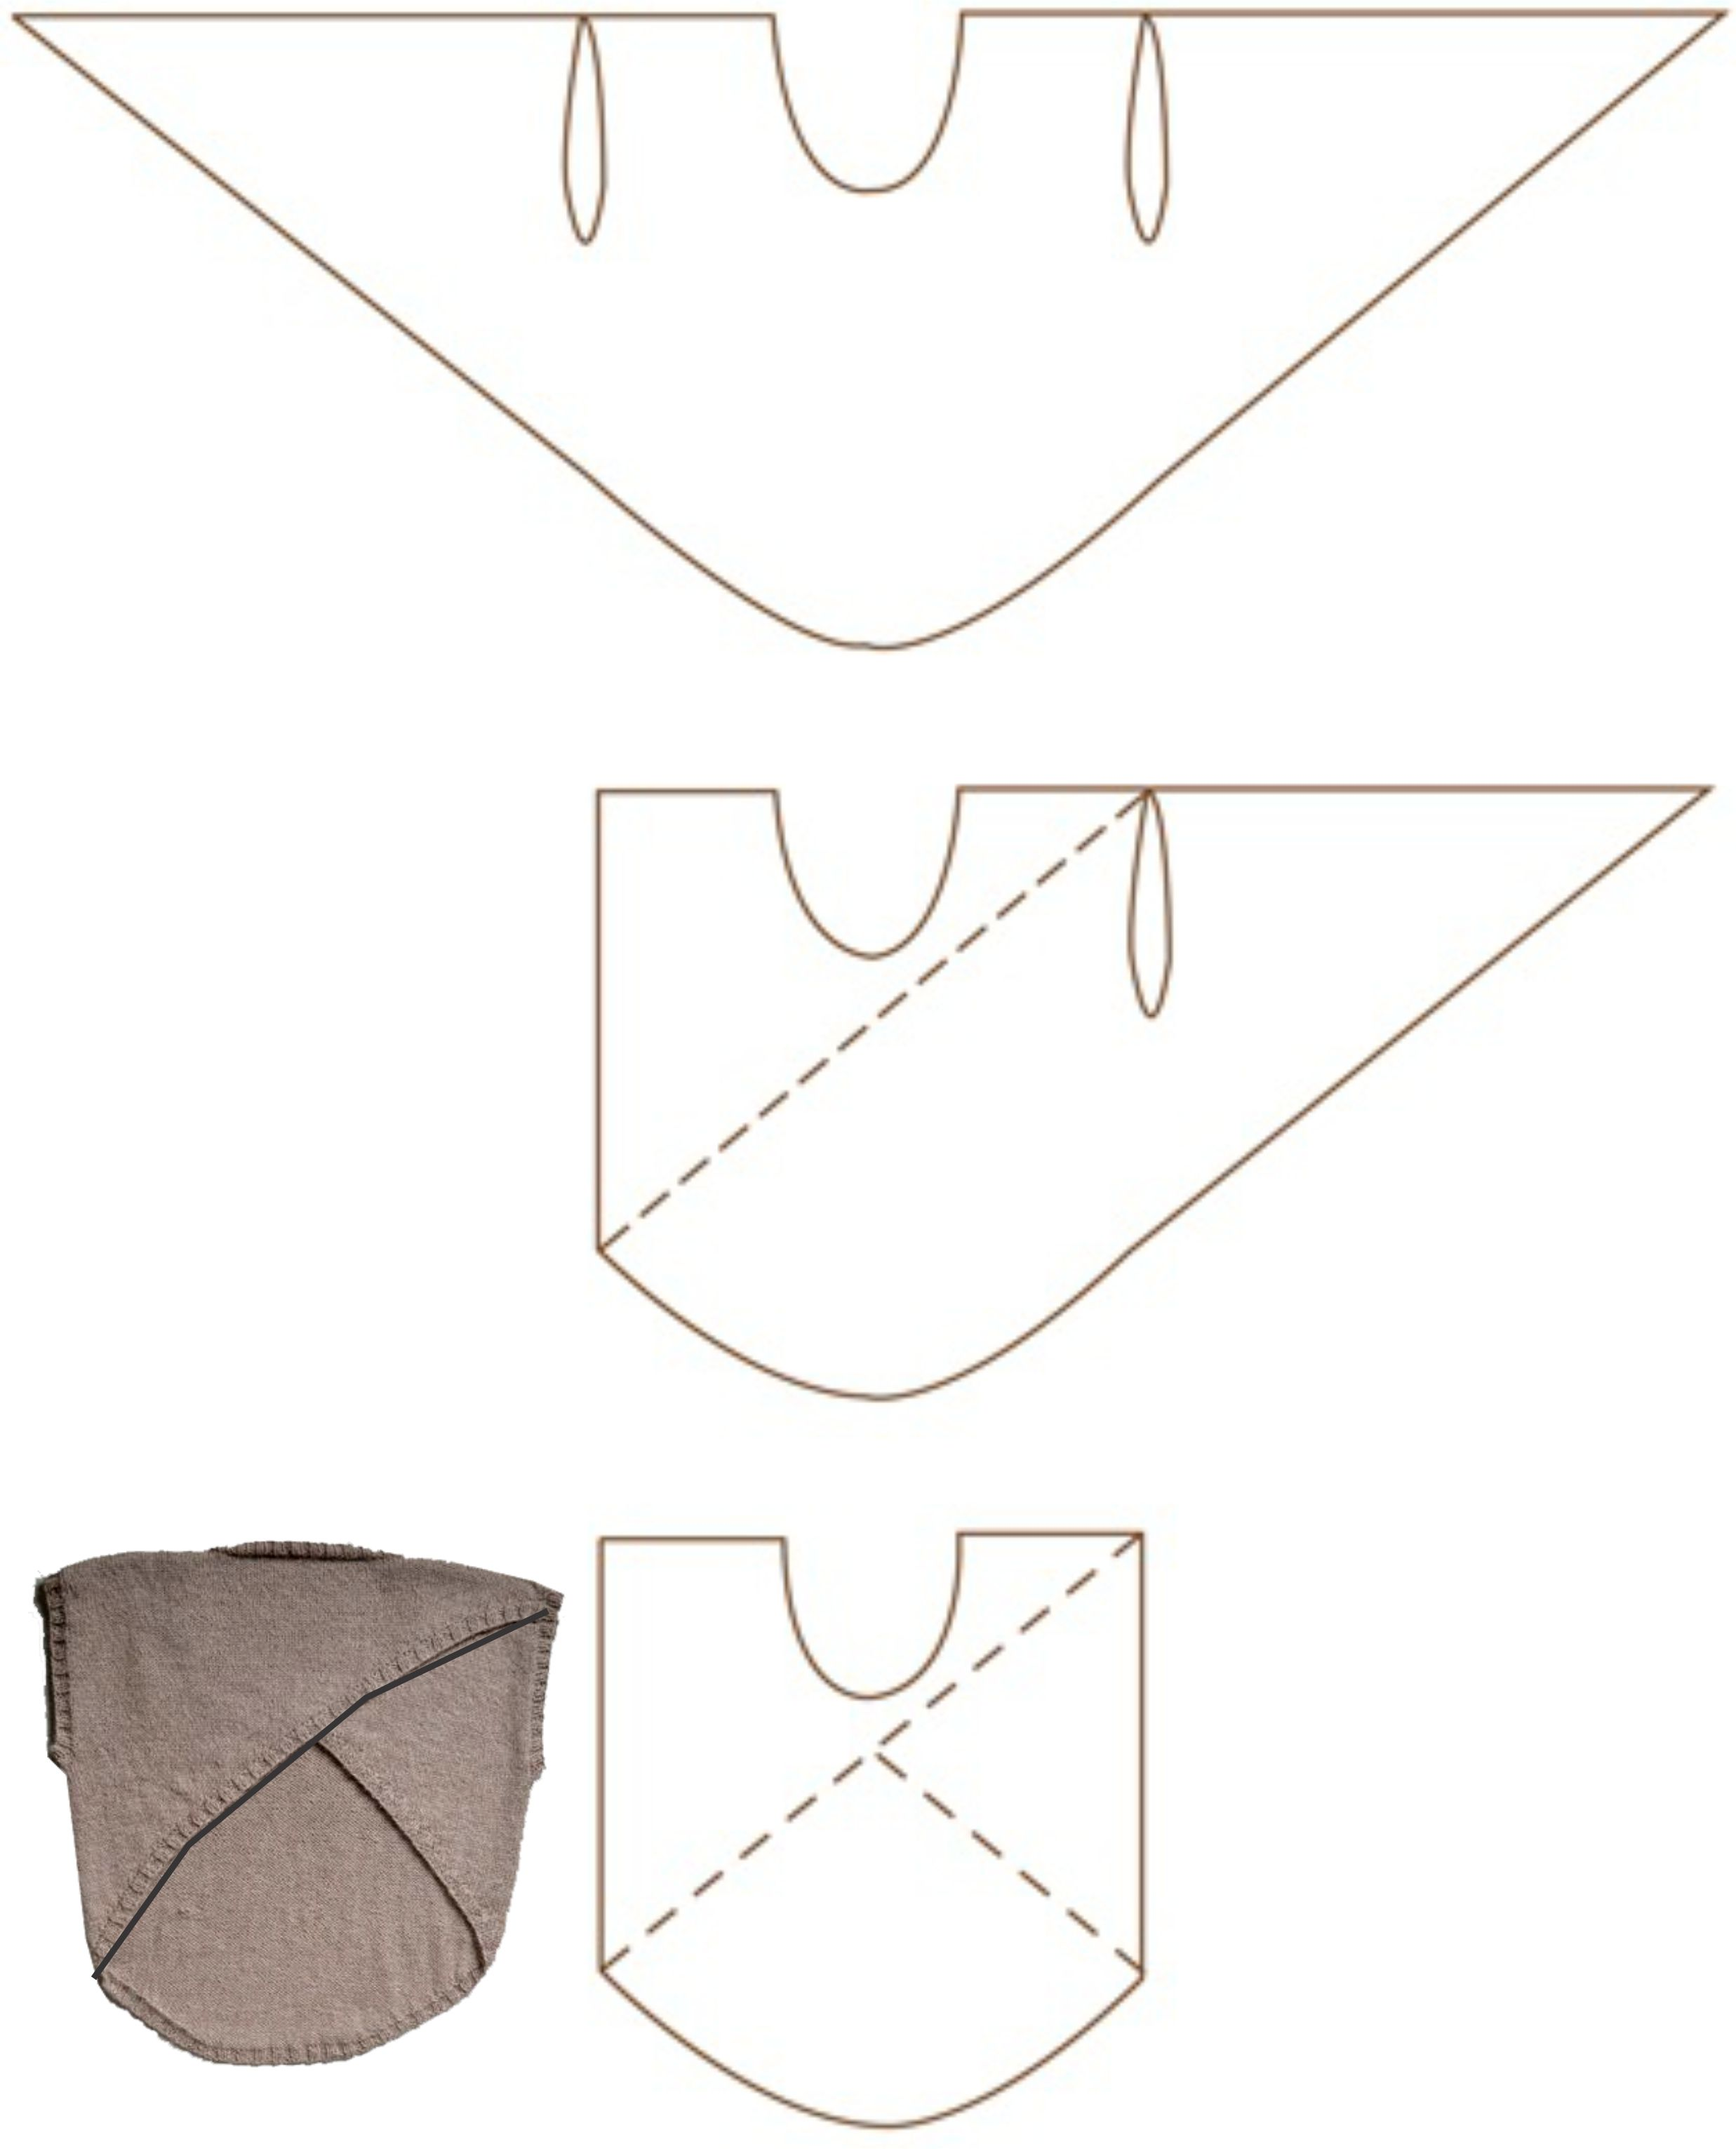 Pin by Renee Keough on Sewing | Pinterest | Sewing, Knitting and ...